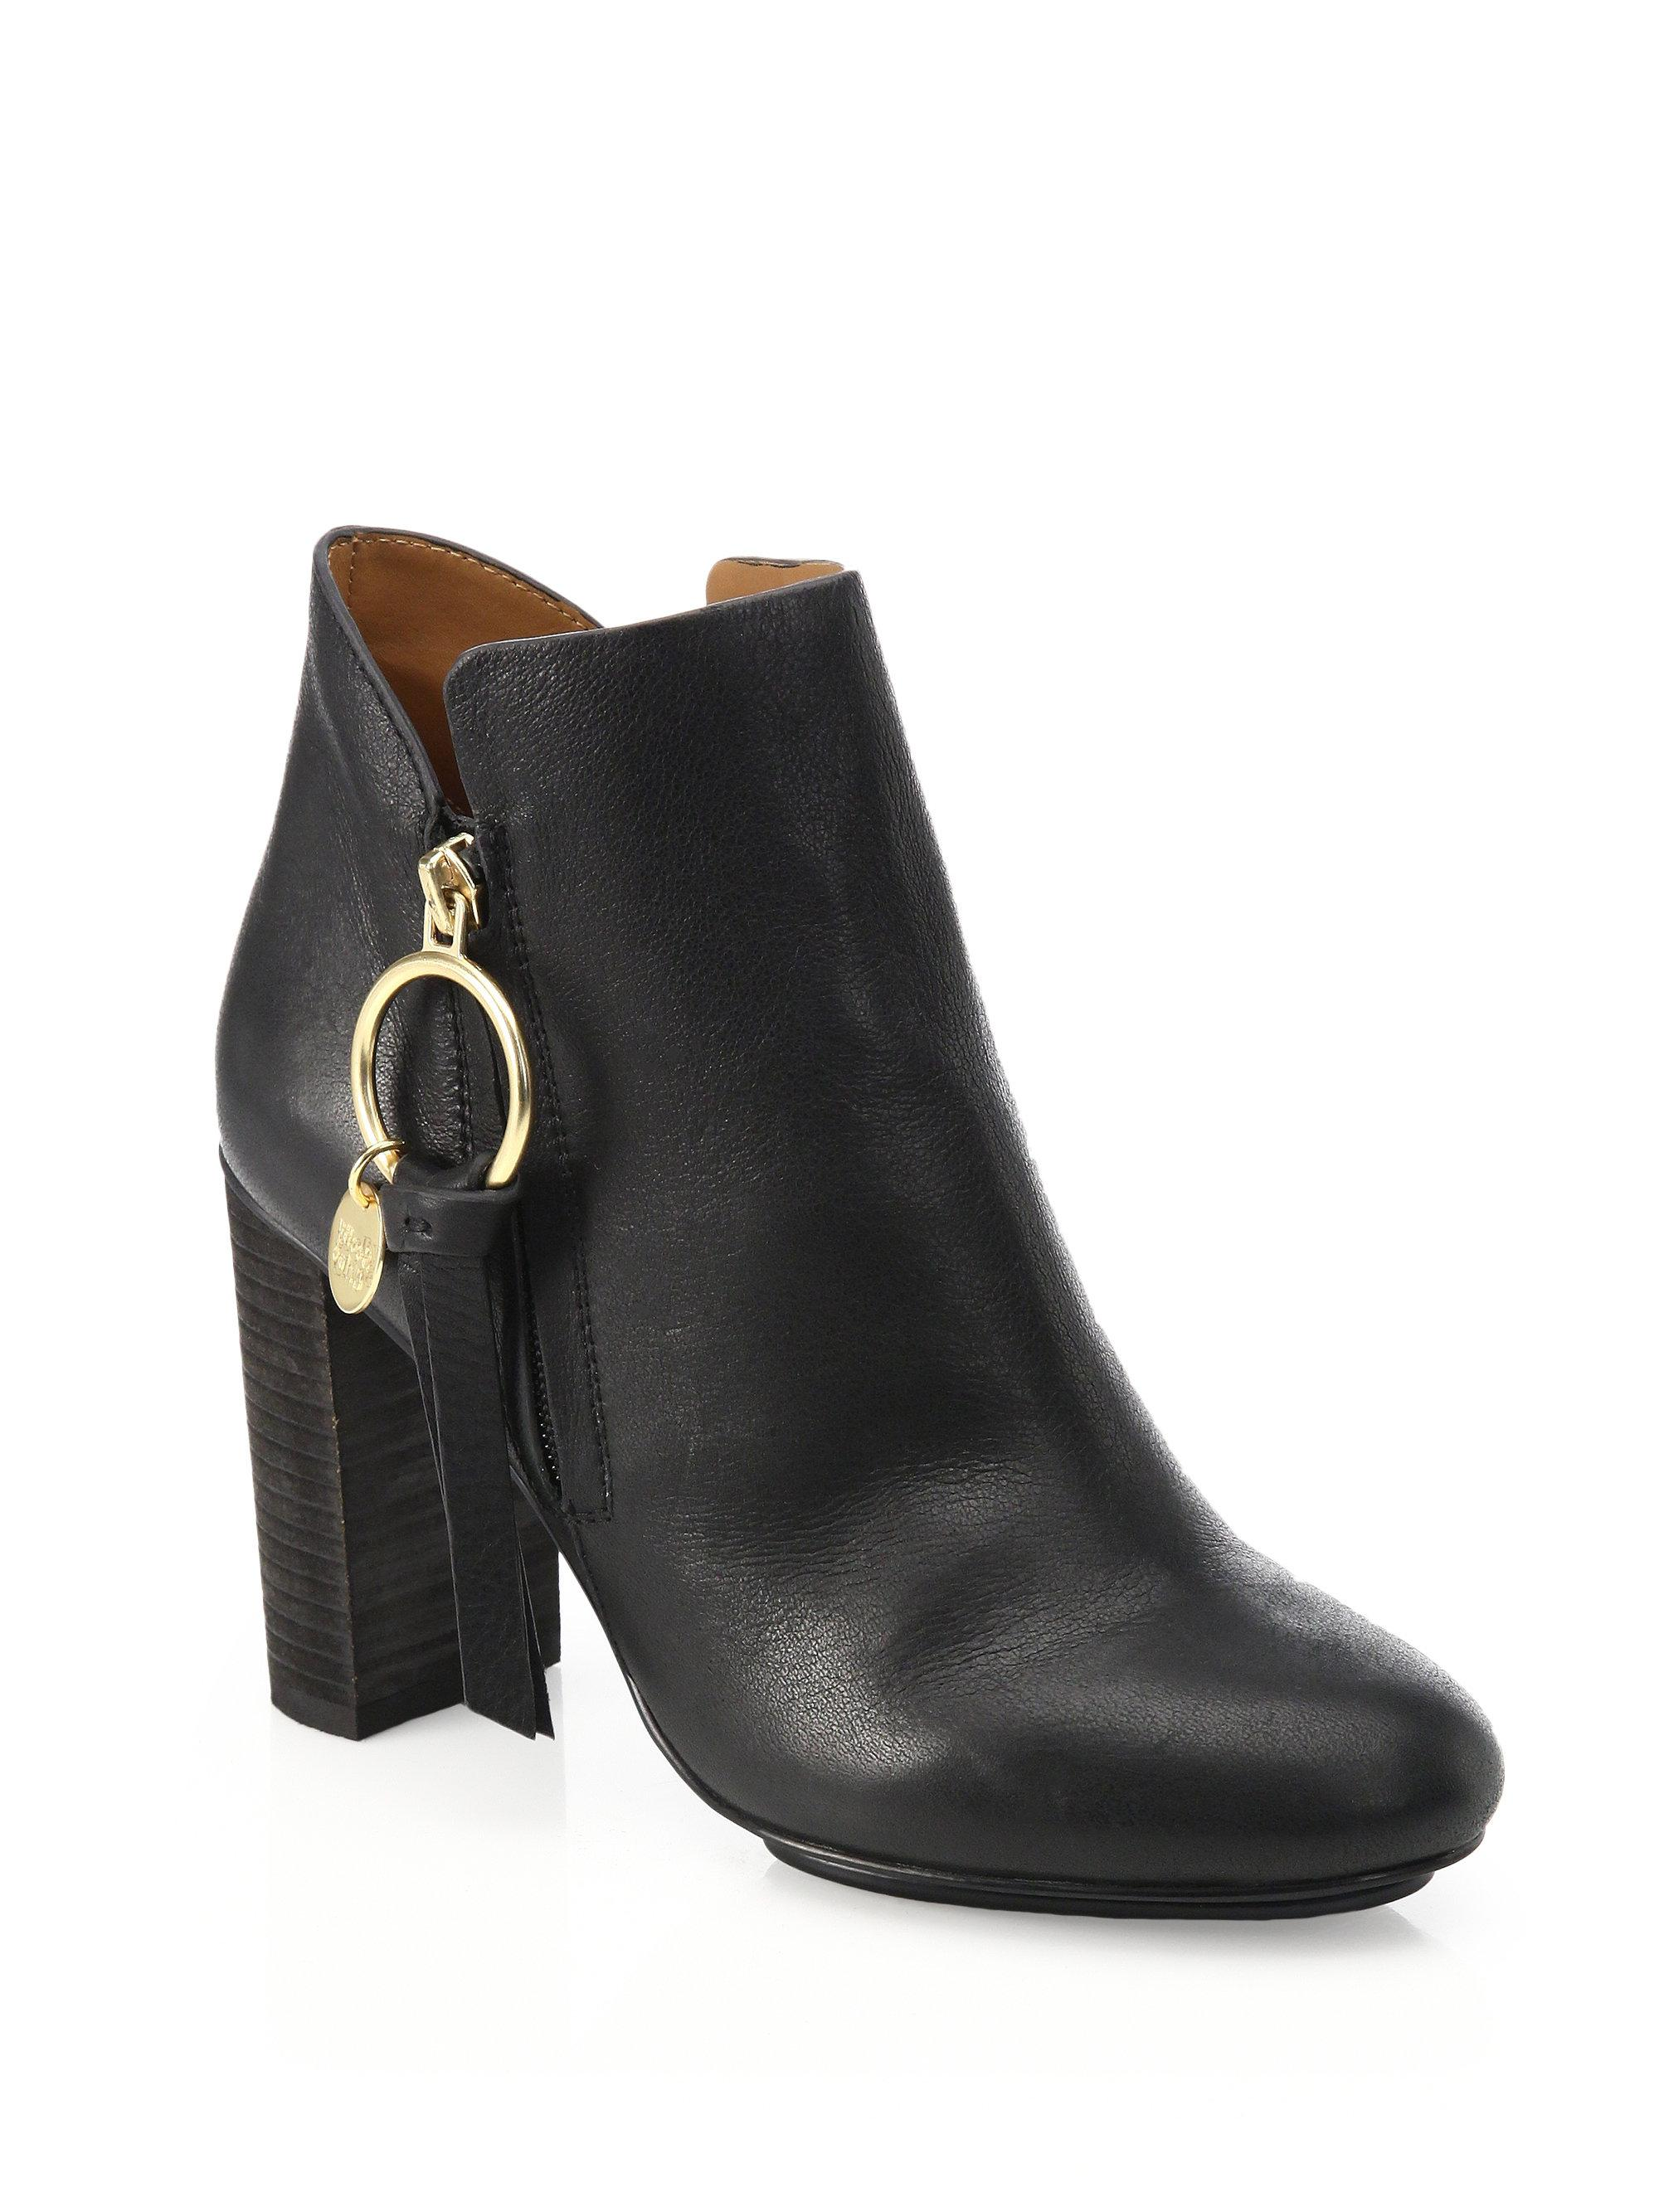 Chloé Erika Platform Leather Booties Q1yozR4e